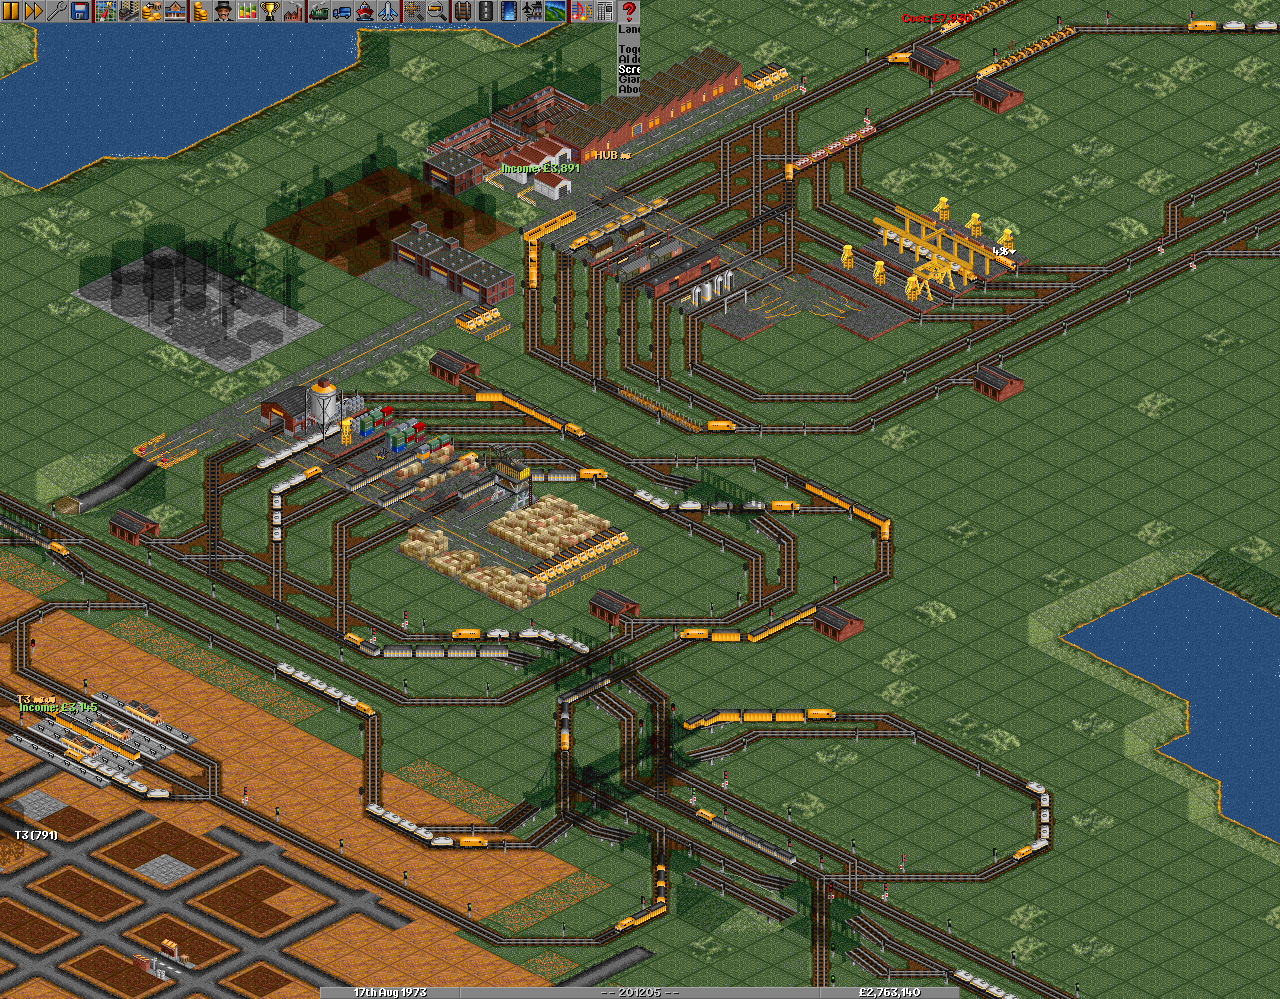 OpenTTD saved games: 201205